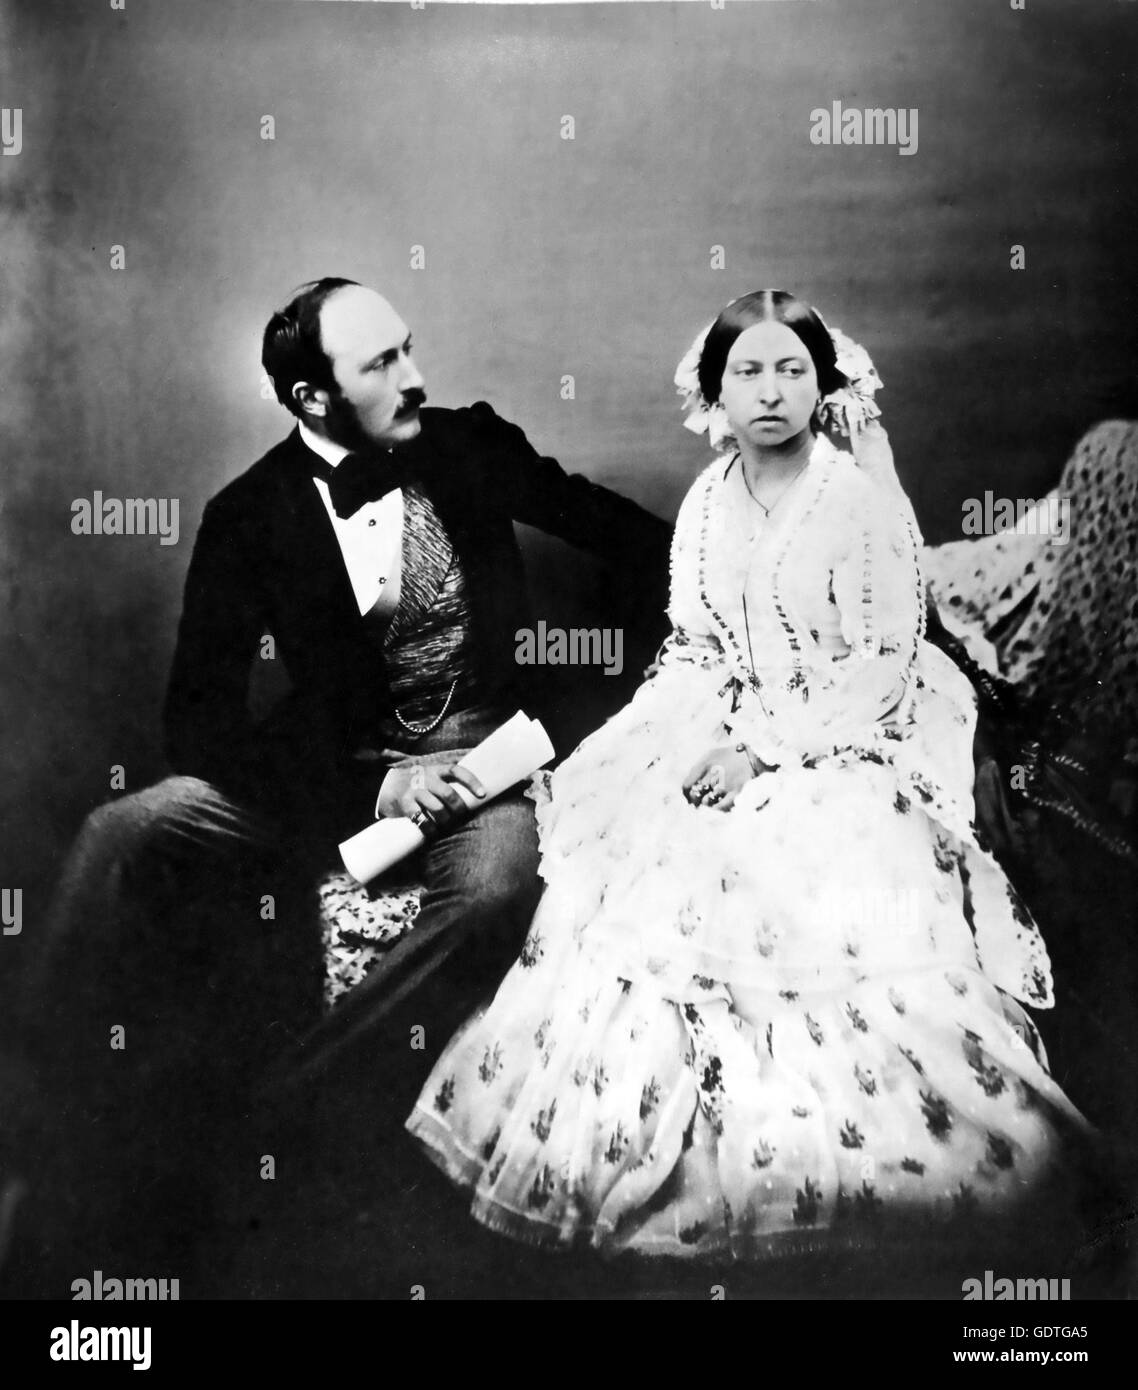 QUEEN VICTORIA with Prince Albert in 1854 - Stock Image